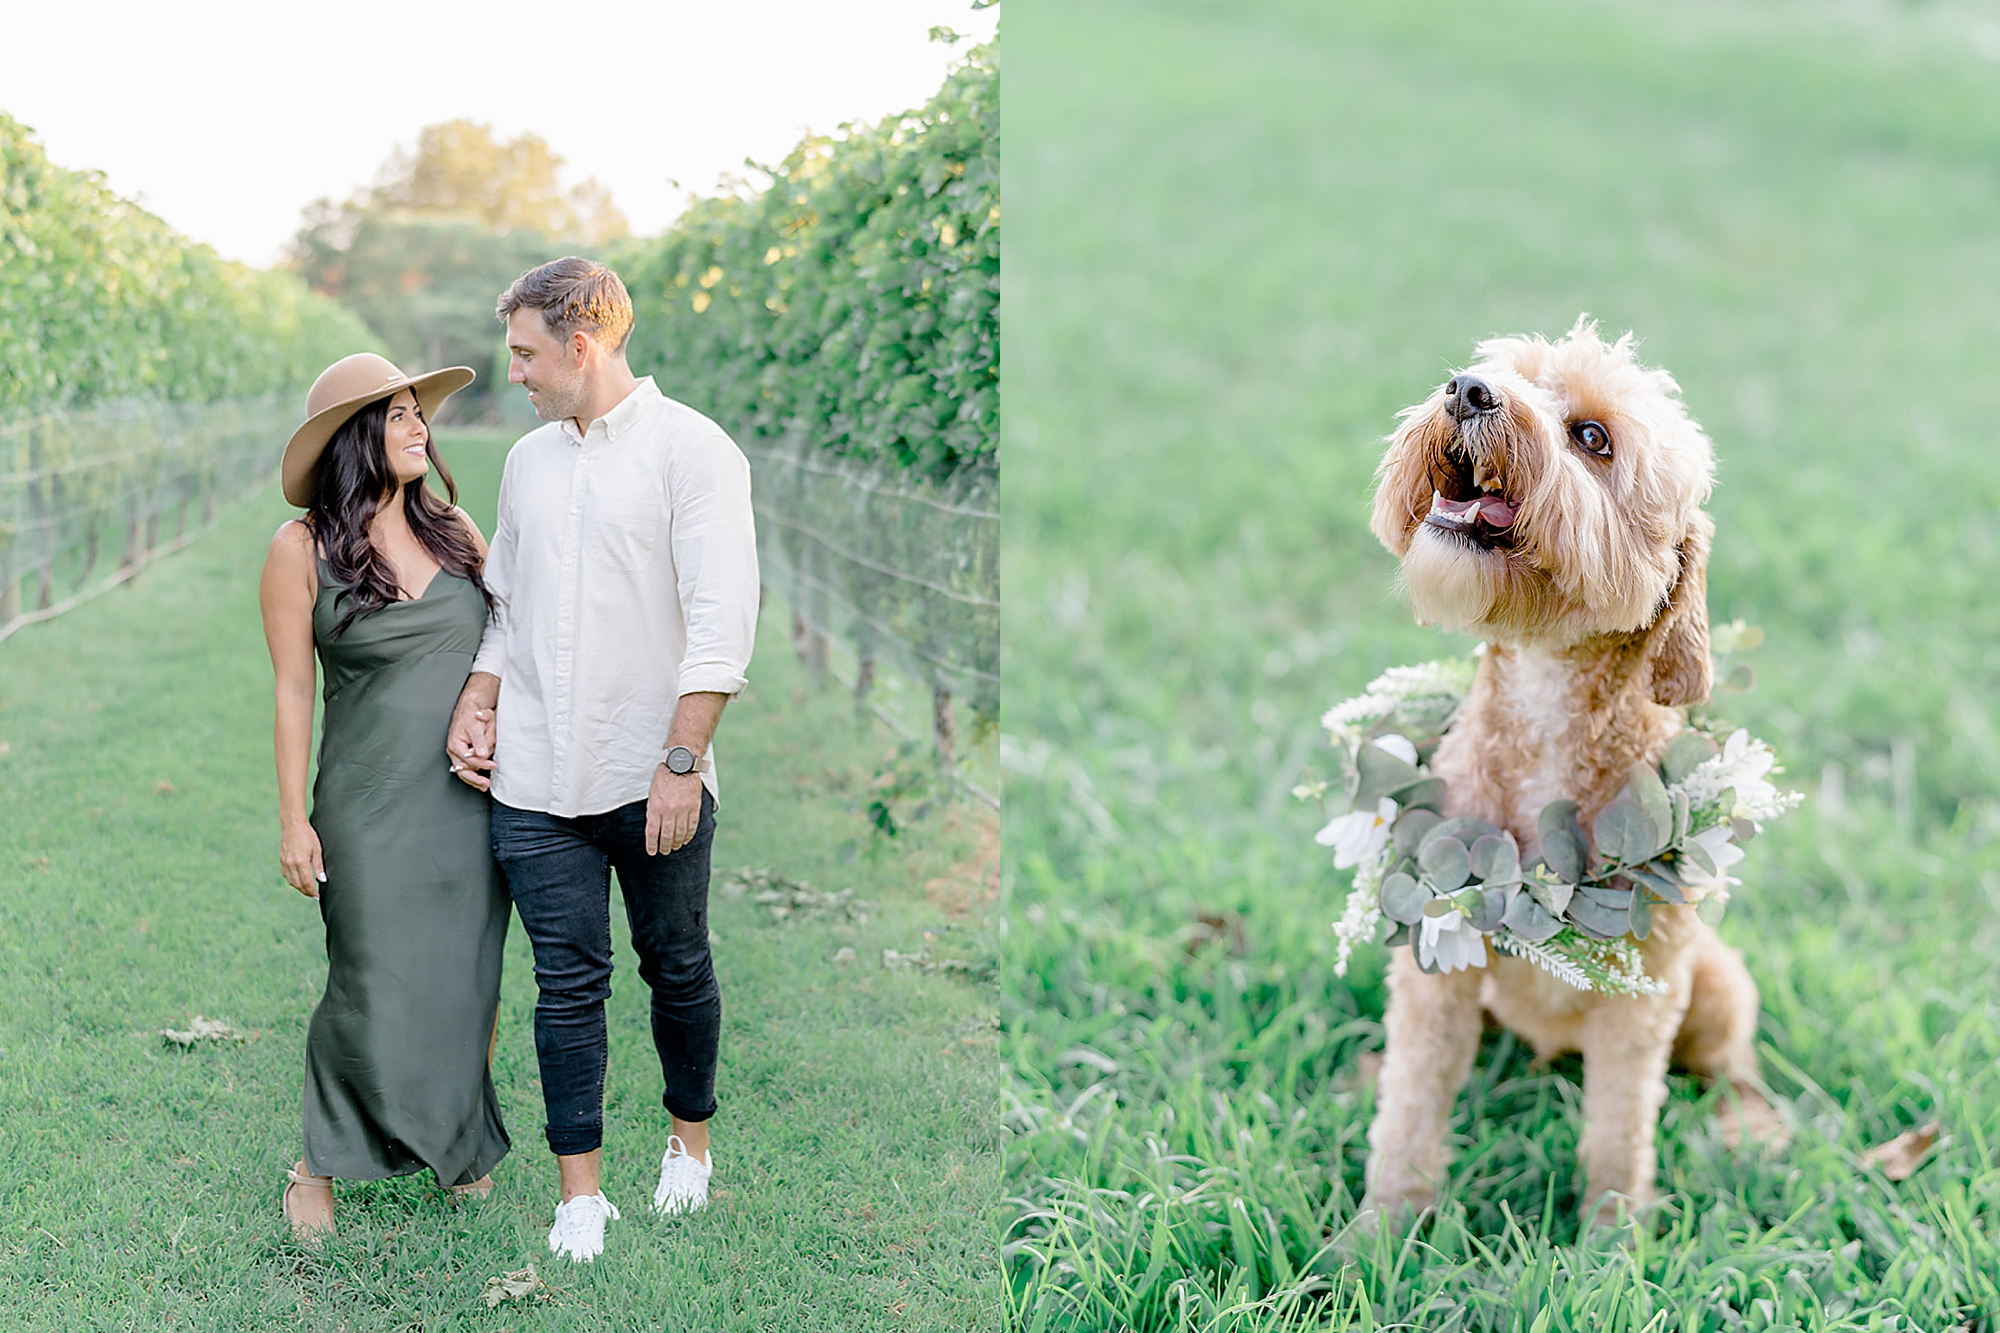 Cape May Winery Engagement Photography by Magdalena Studios 0016